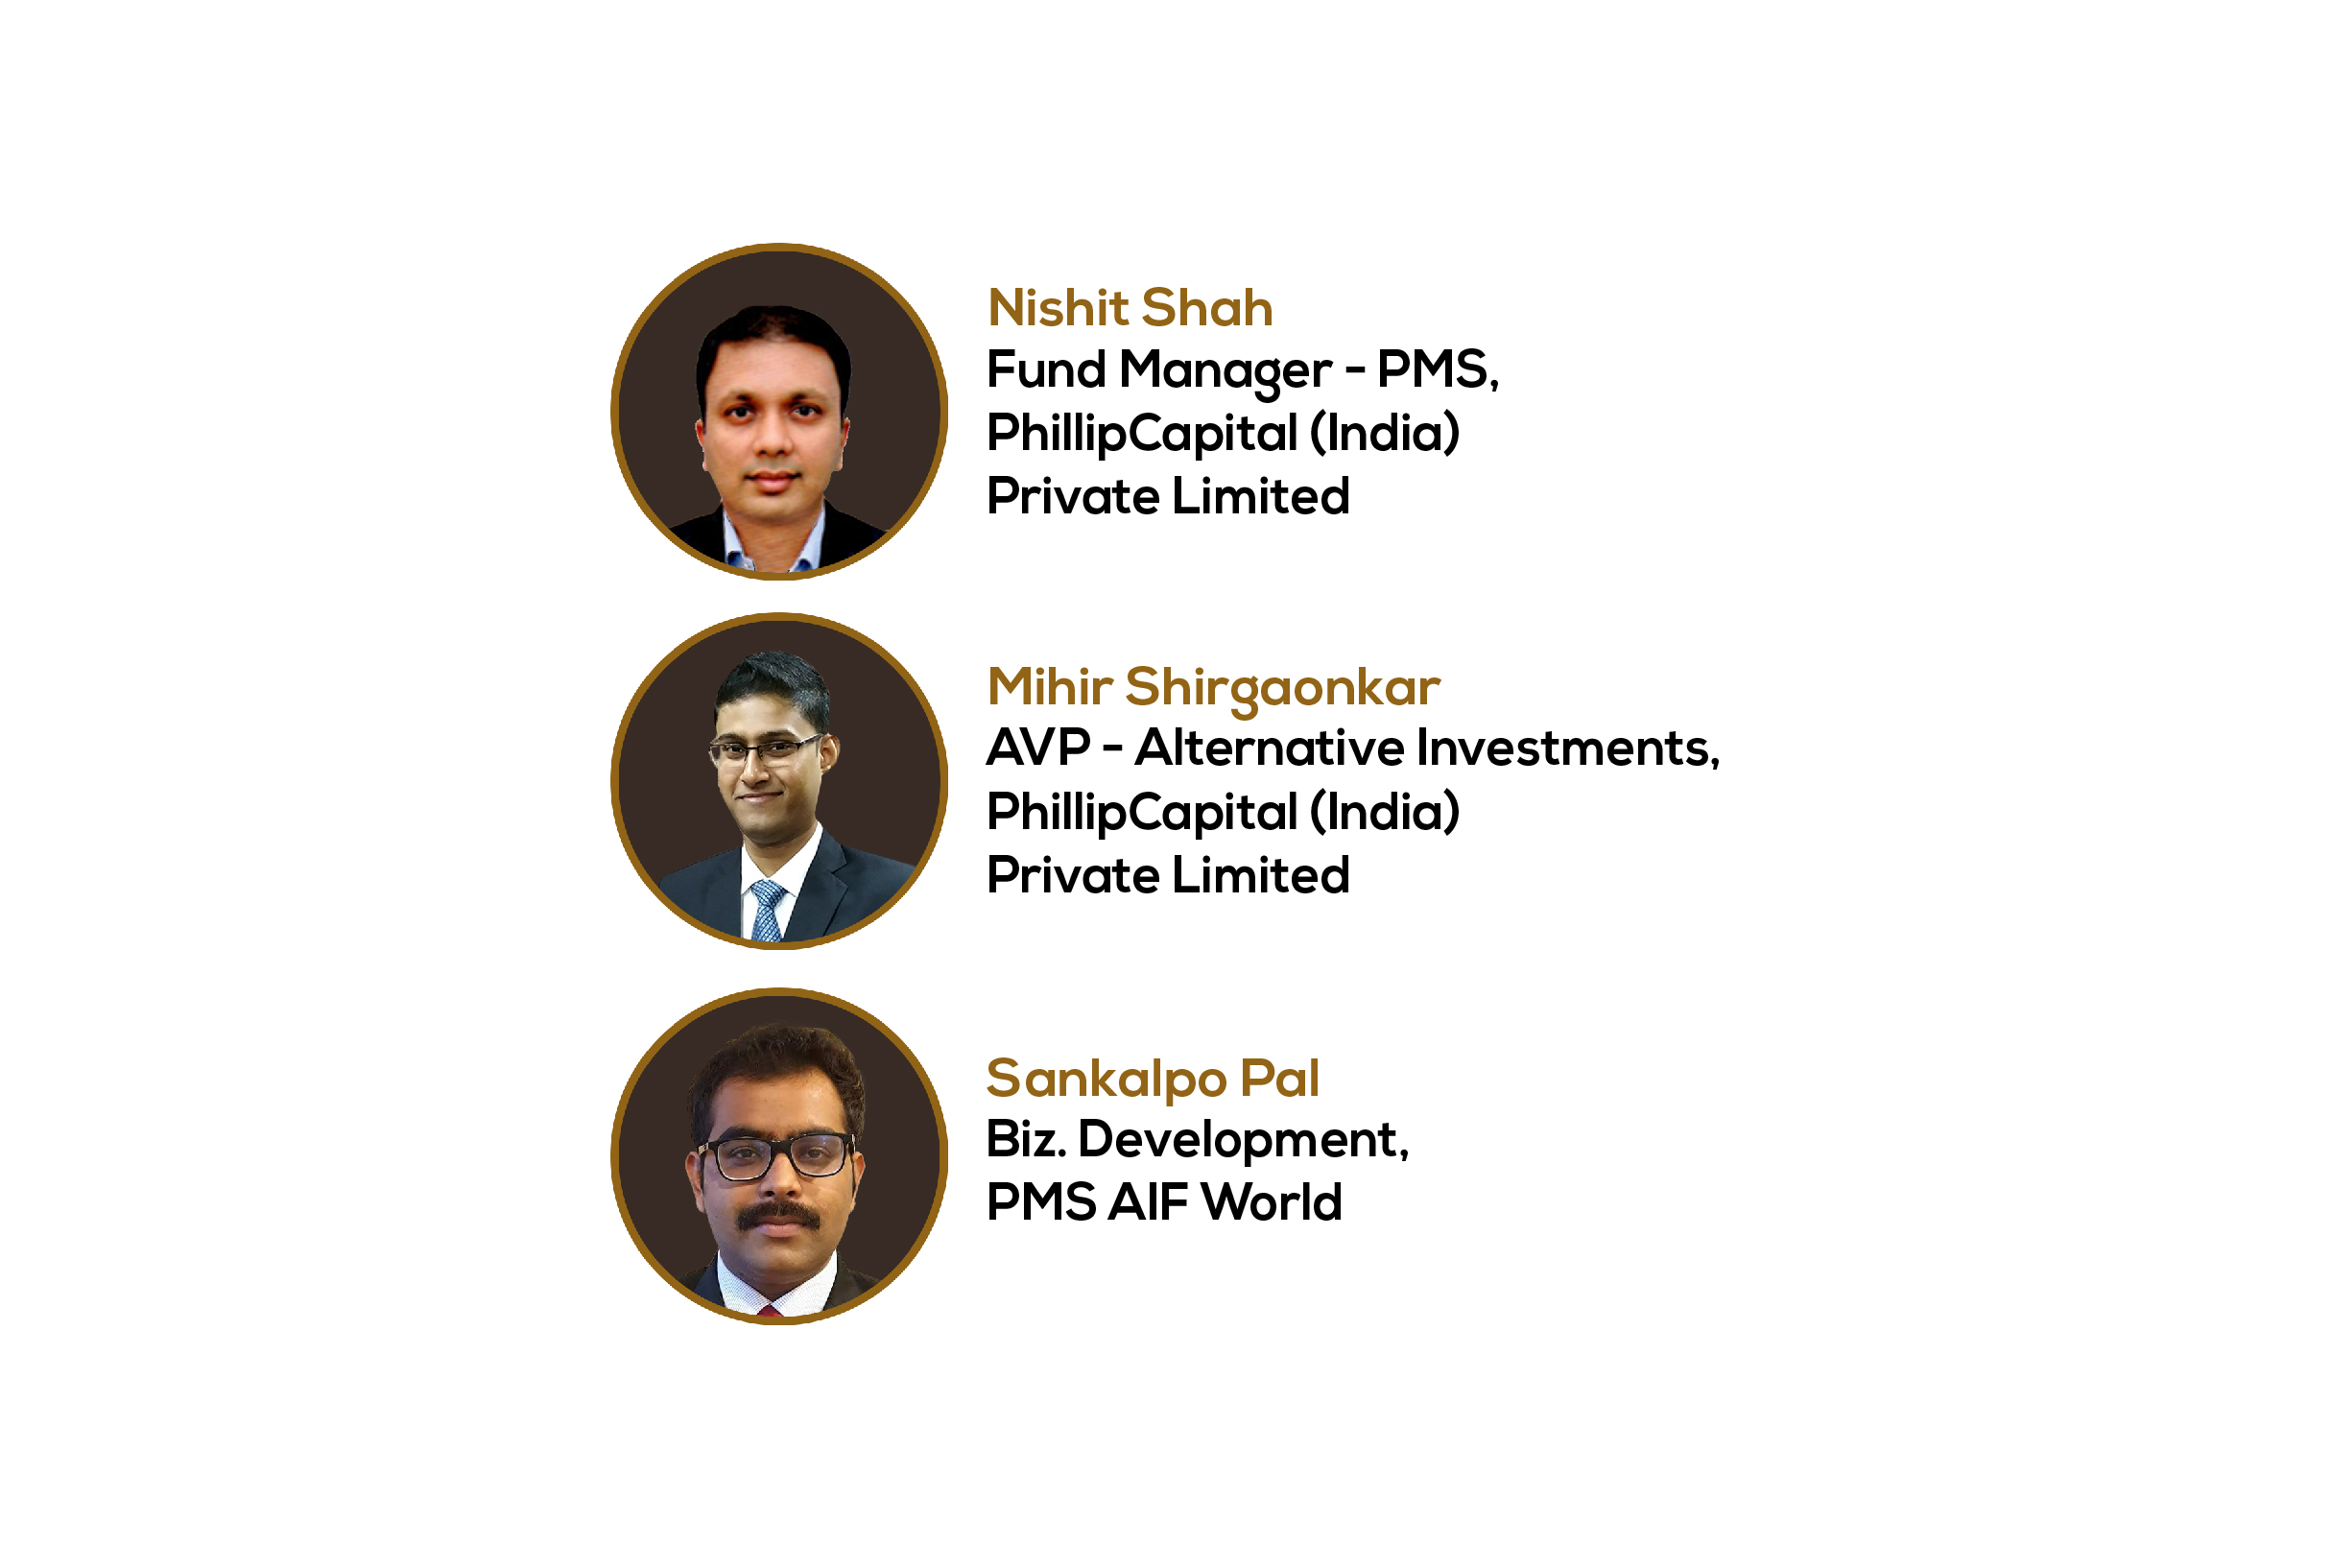 Innovative Products from PhillipCapital: Global Diversification & Customized Portfolios